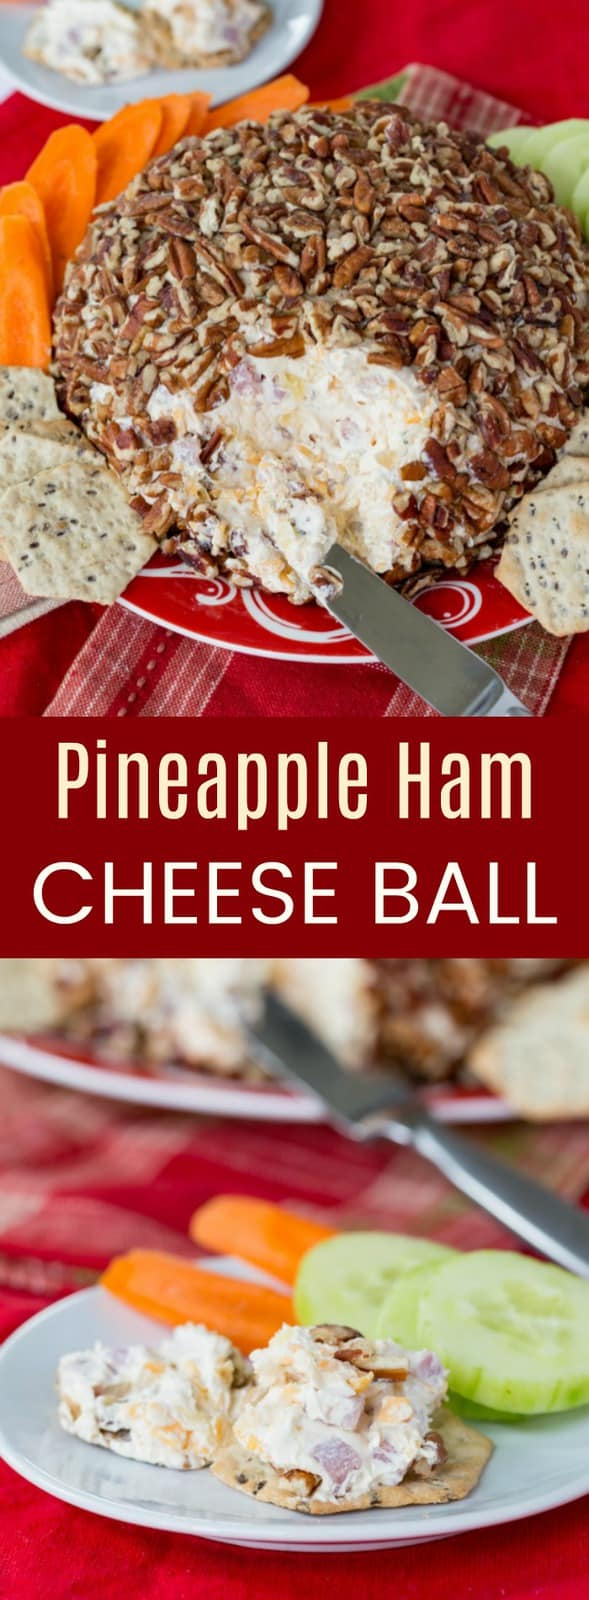 Pineapple Ham Cheese Ball - an easy party appetizer recipe for spreading on crackers or veggies. This sweet and savory, cheesy snack will be a holiday favorite. #AD #cheeseball #appetizer #glutenfree